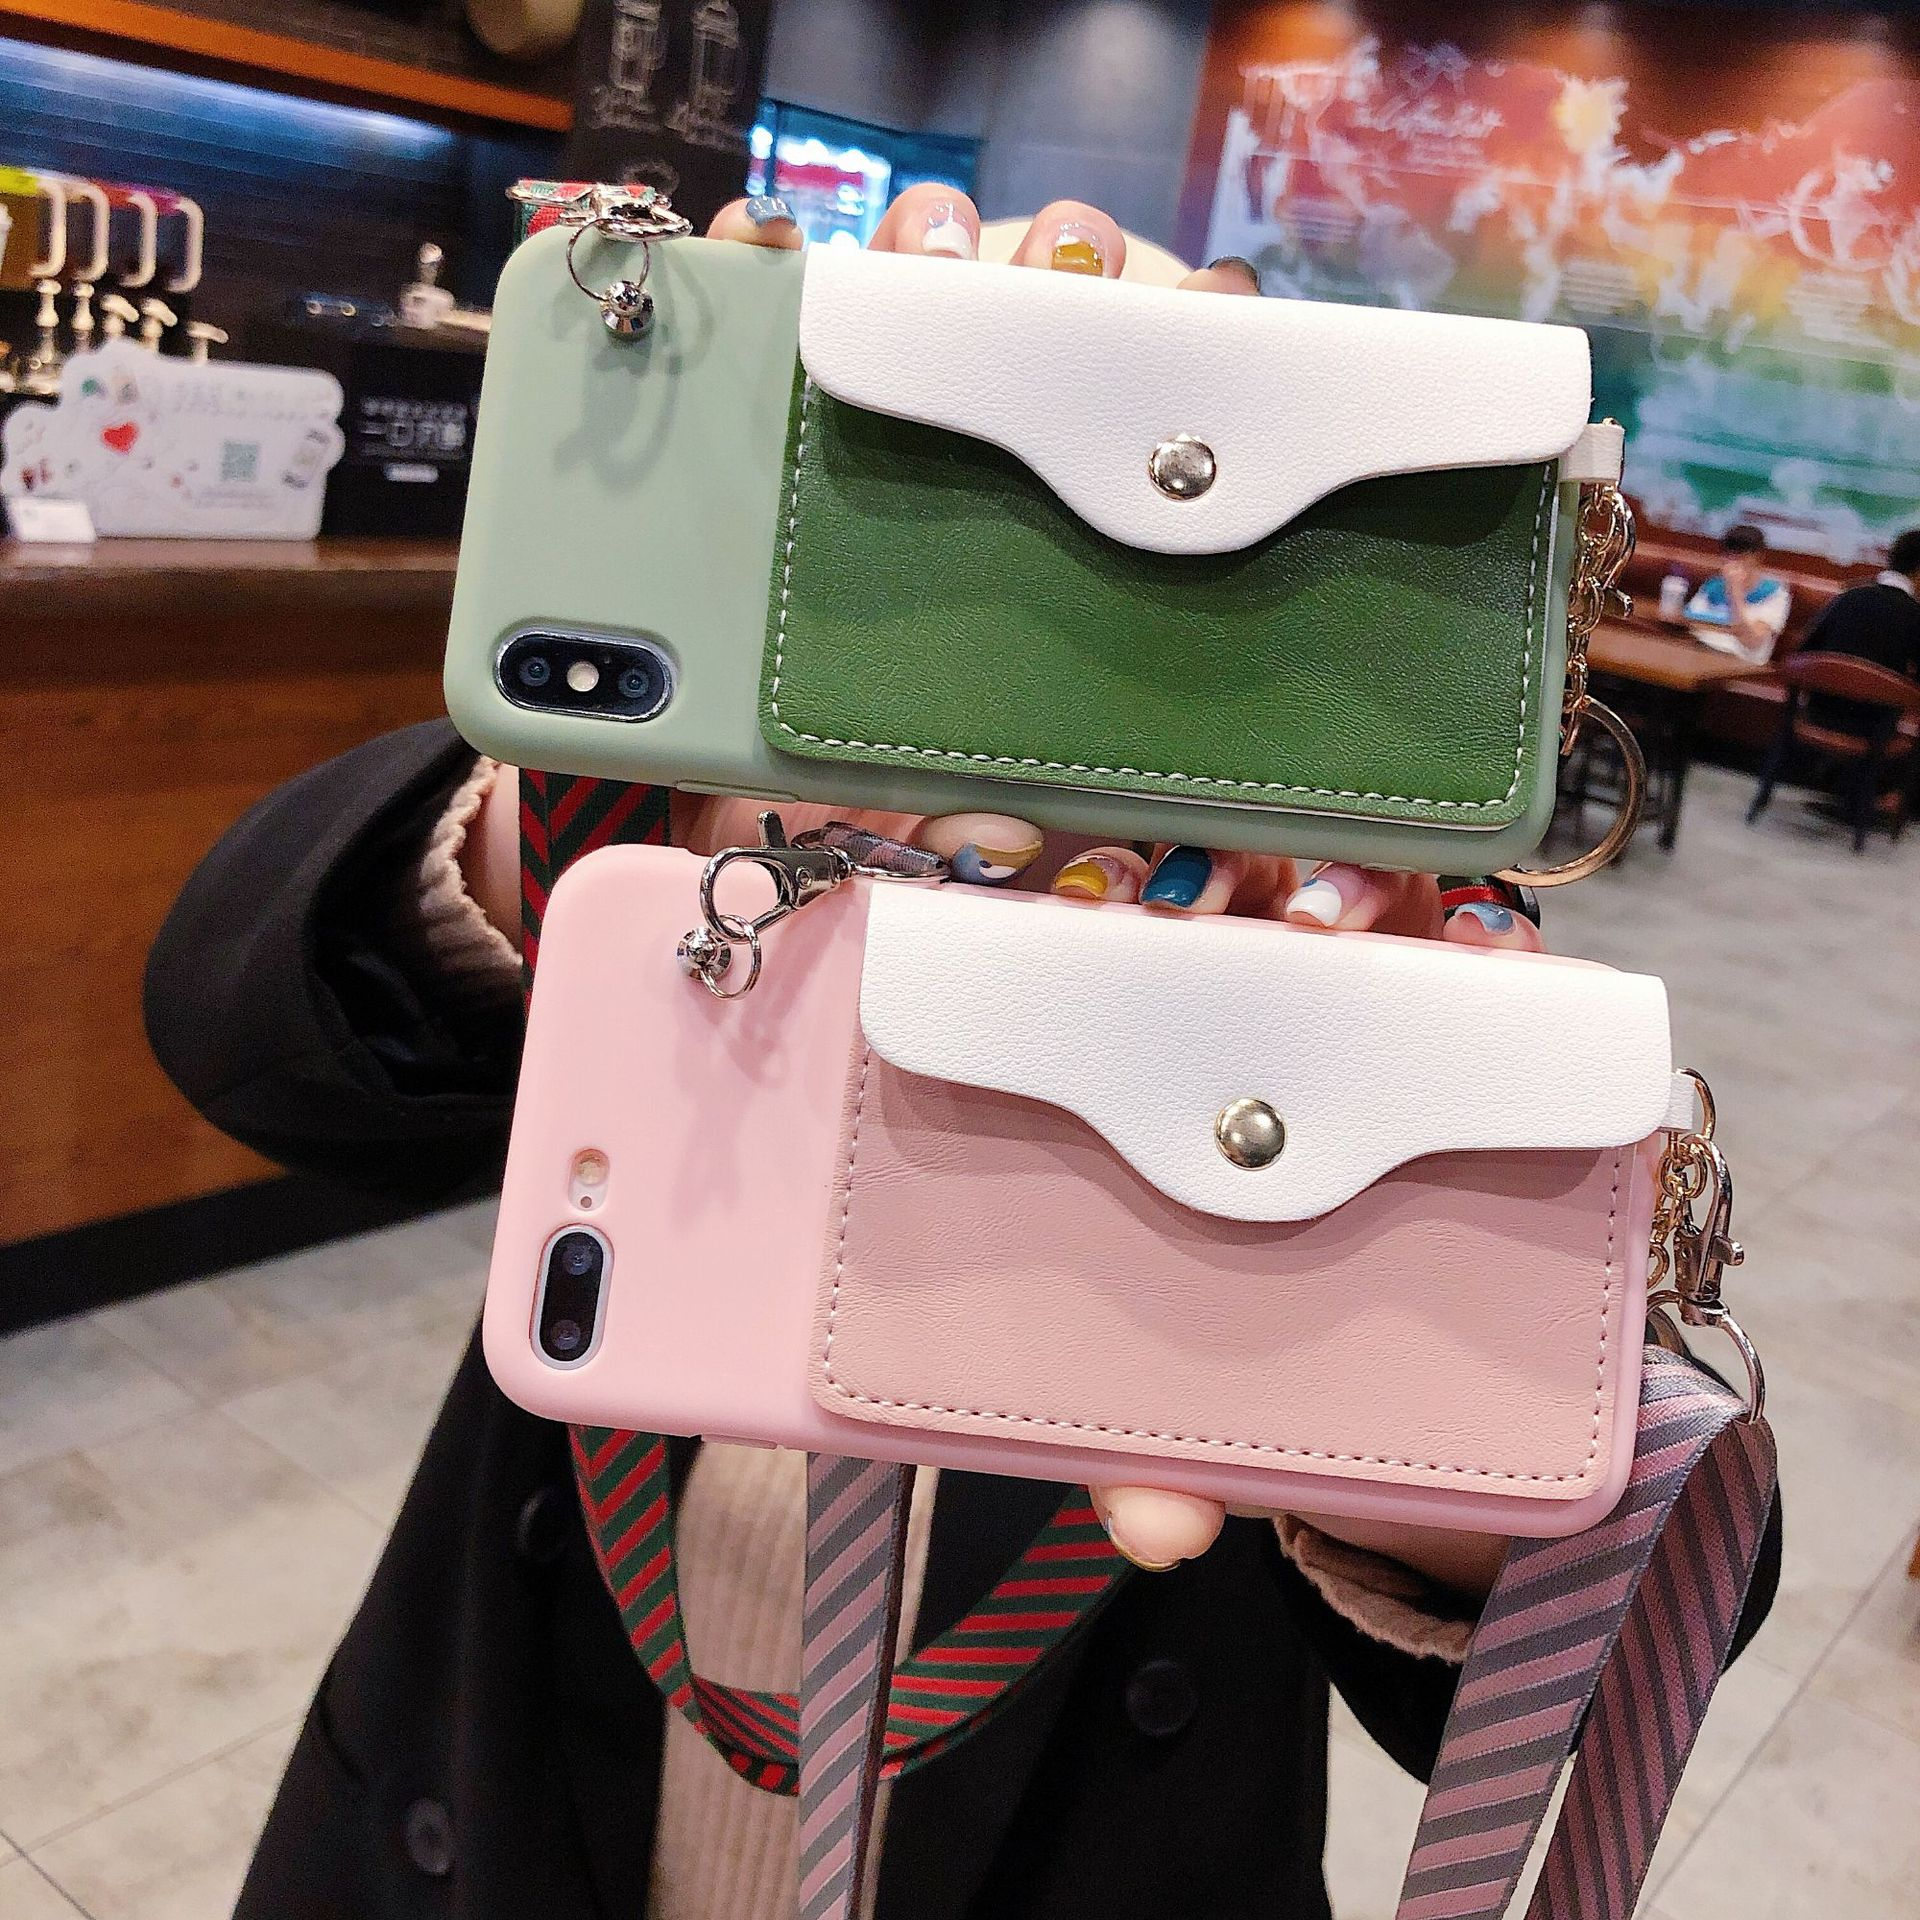 Candy Soft Silicone Case Cover For Samsung Galaxy S10 S10E S9 S8 Plus Note 10 9 8 S7 S7 Edge Card Holder Wallet Strap Lanyard